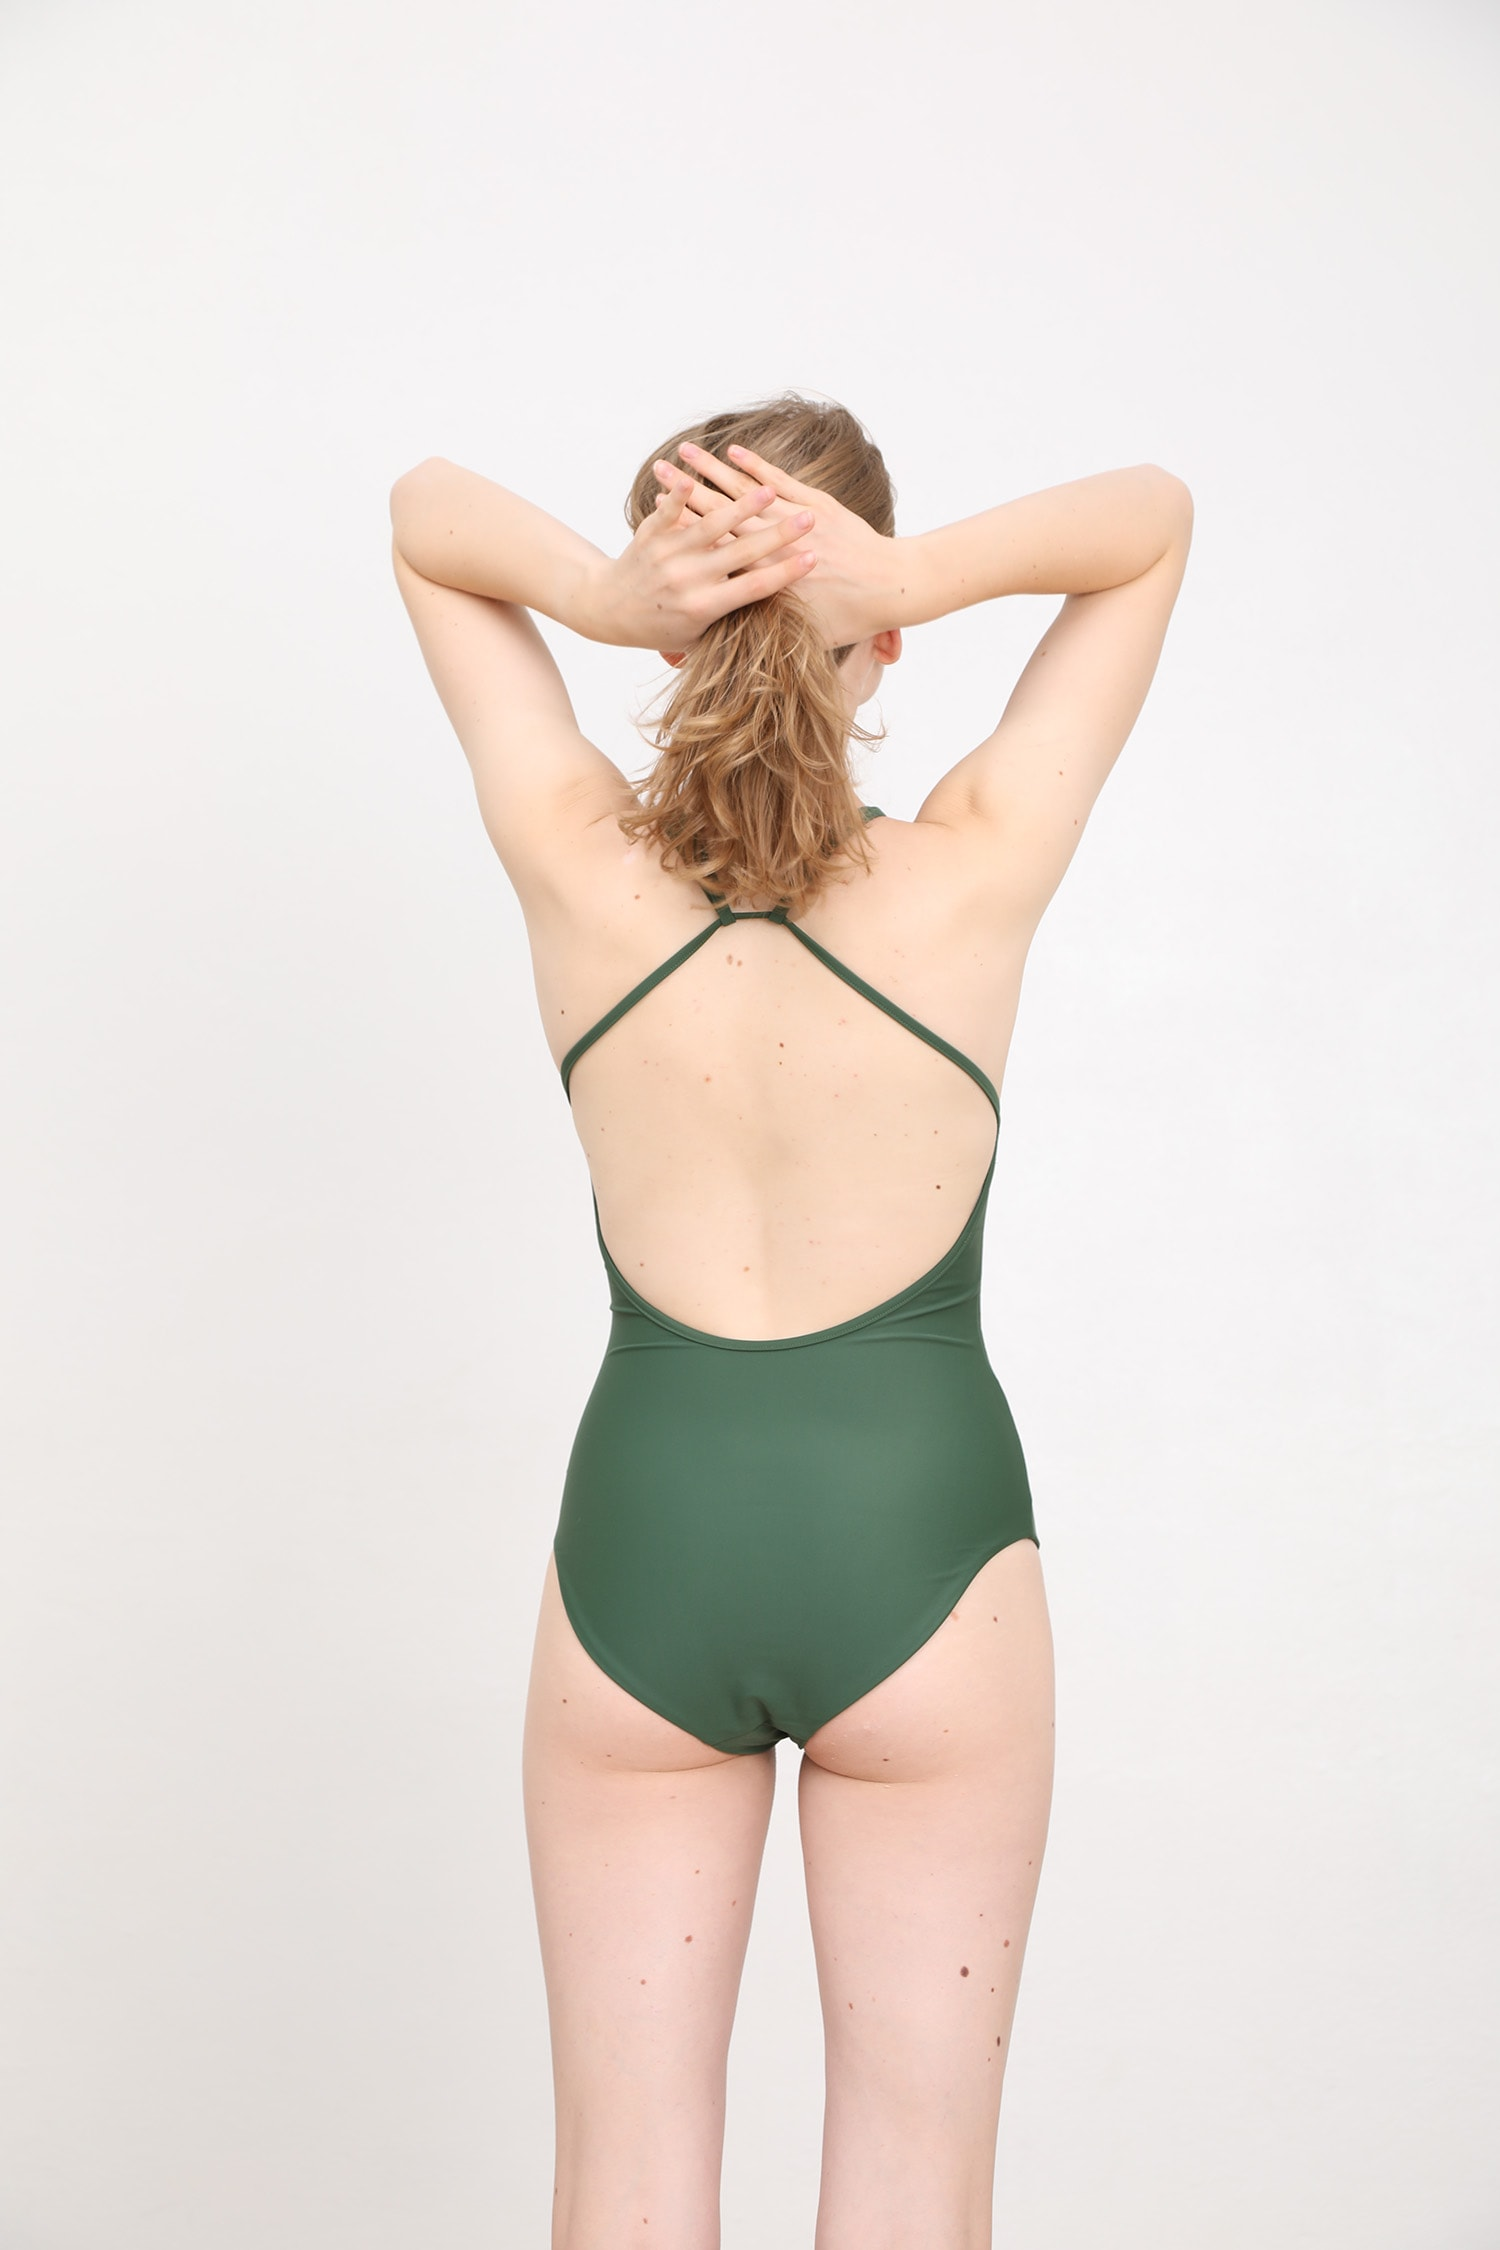 margaret and hermione_ss19_swimsuit no2_dark green_154,00eur_hinten_online